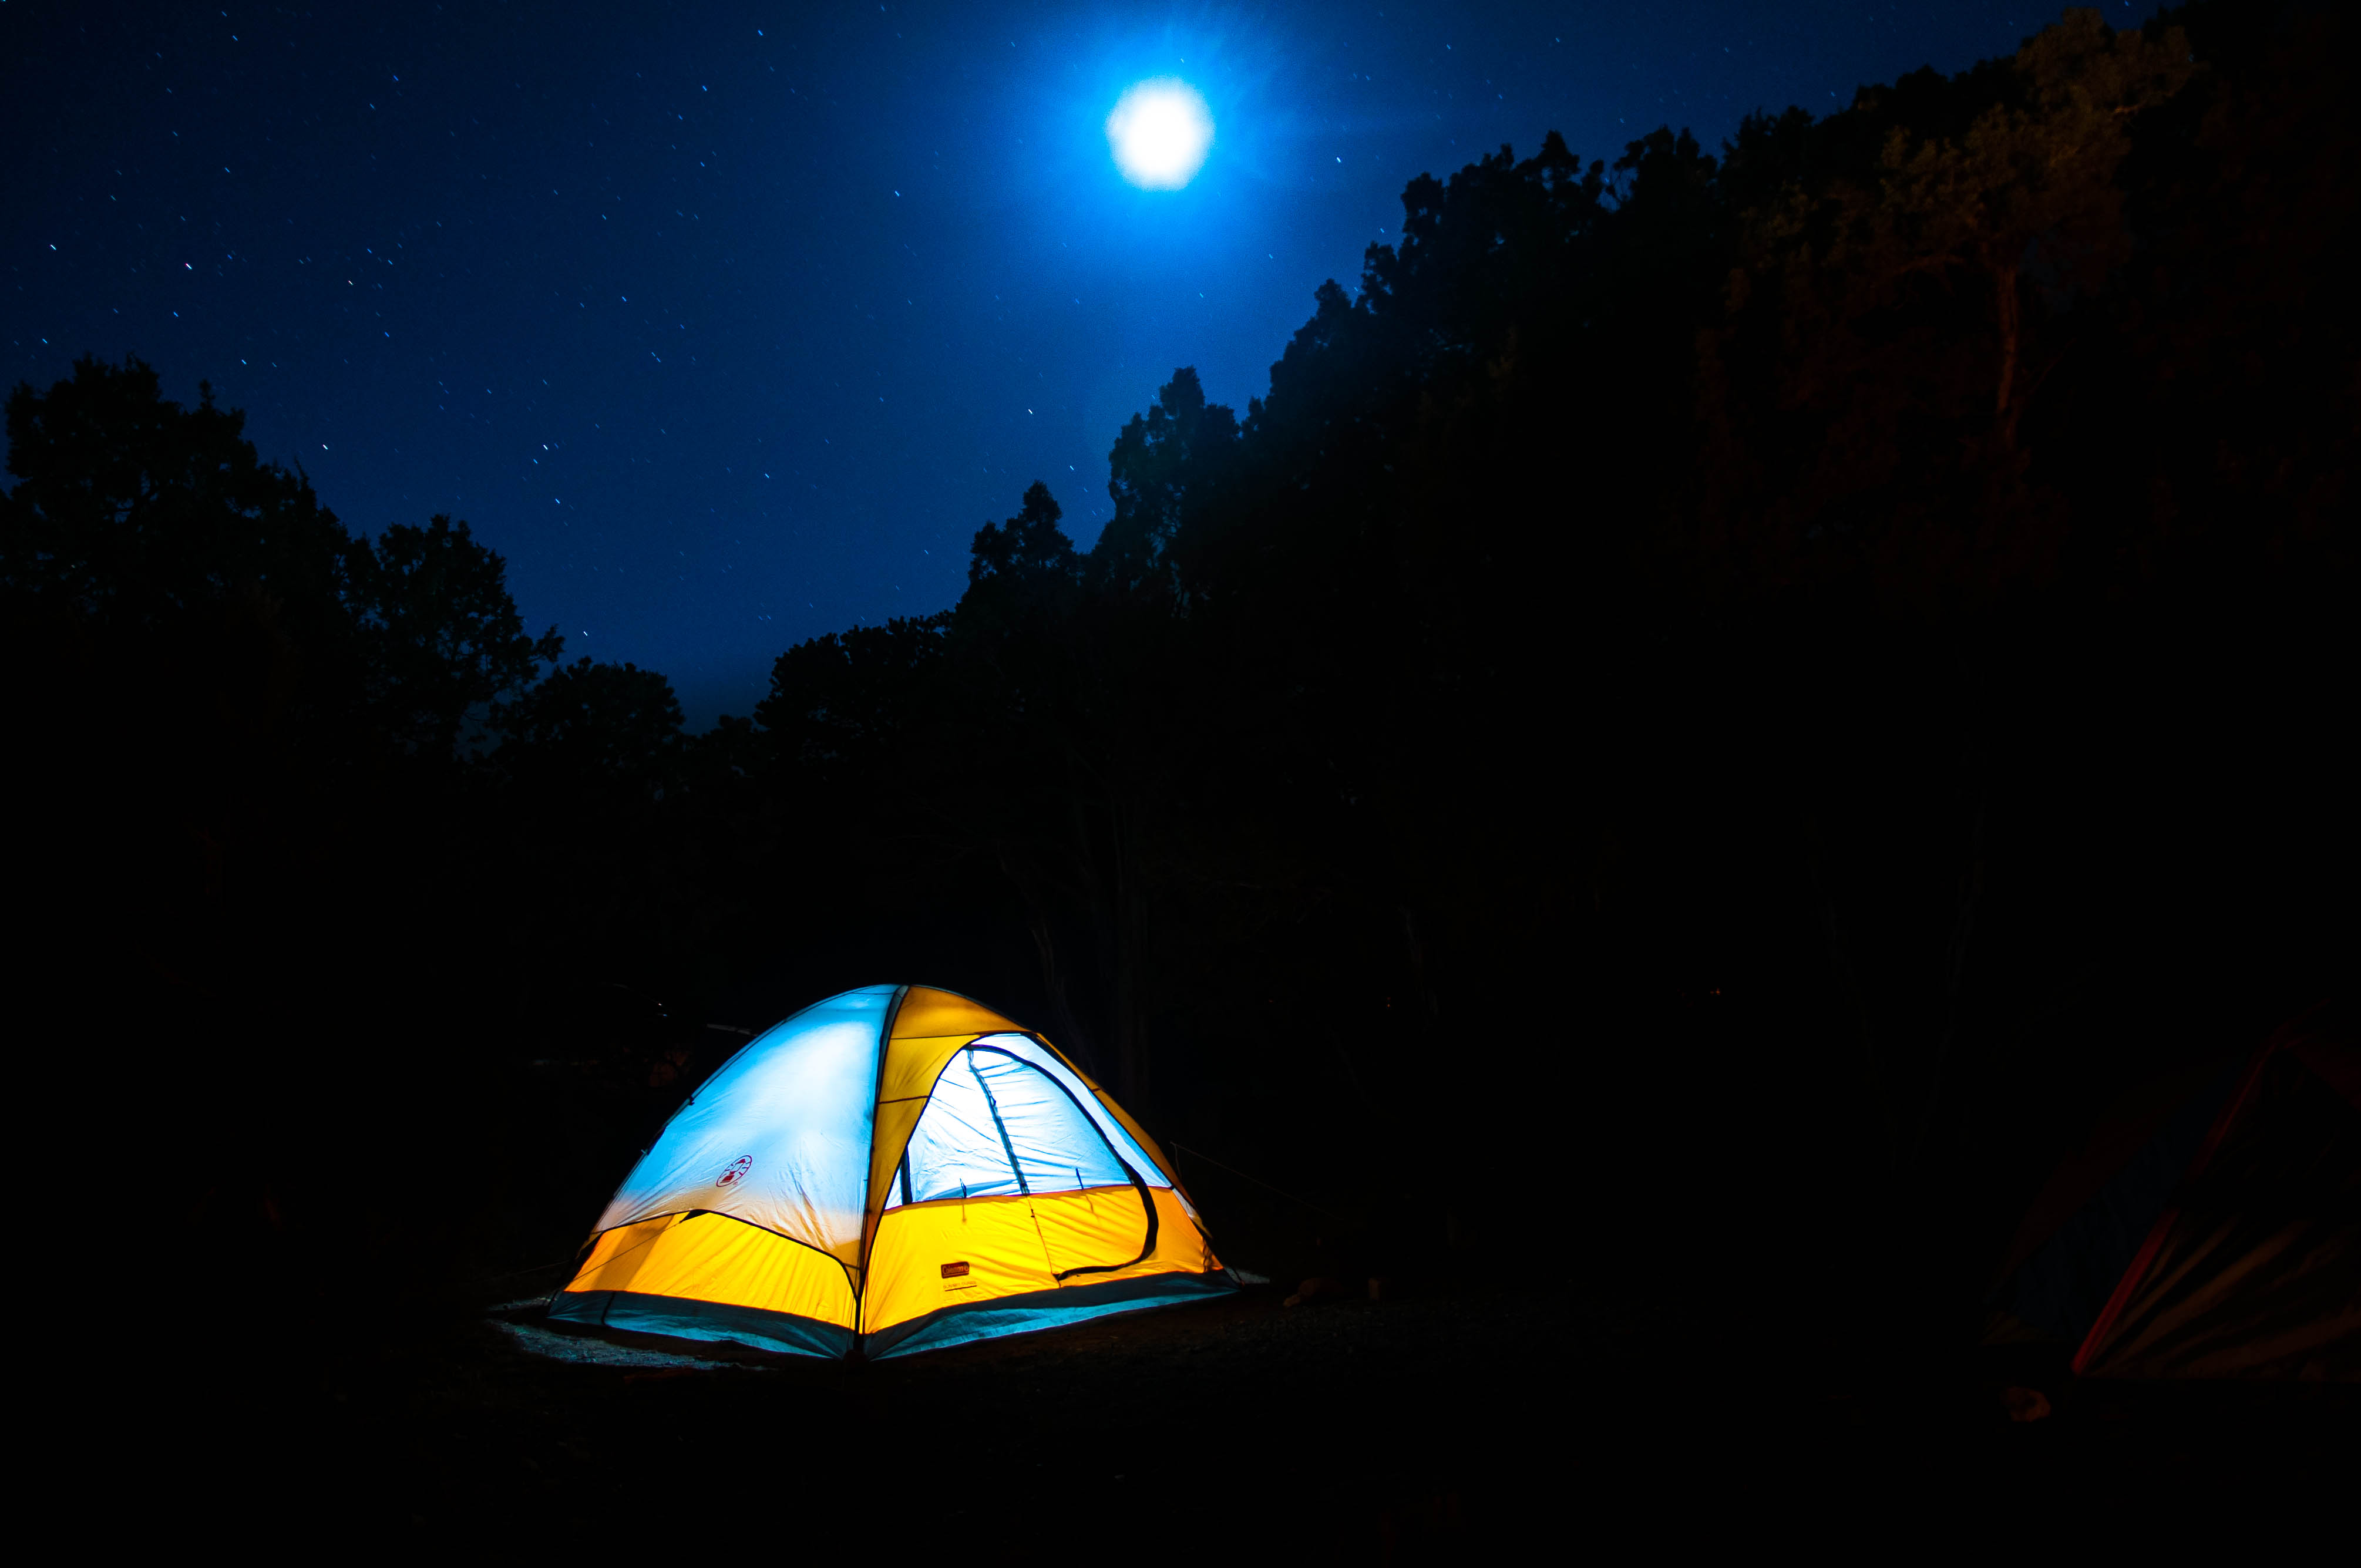 4020x2670 High Def Collection 47 Full Hd Camping Wallpapers (In High